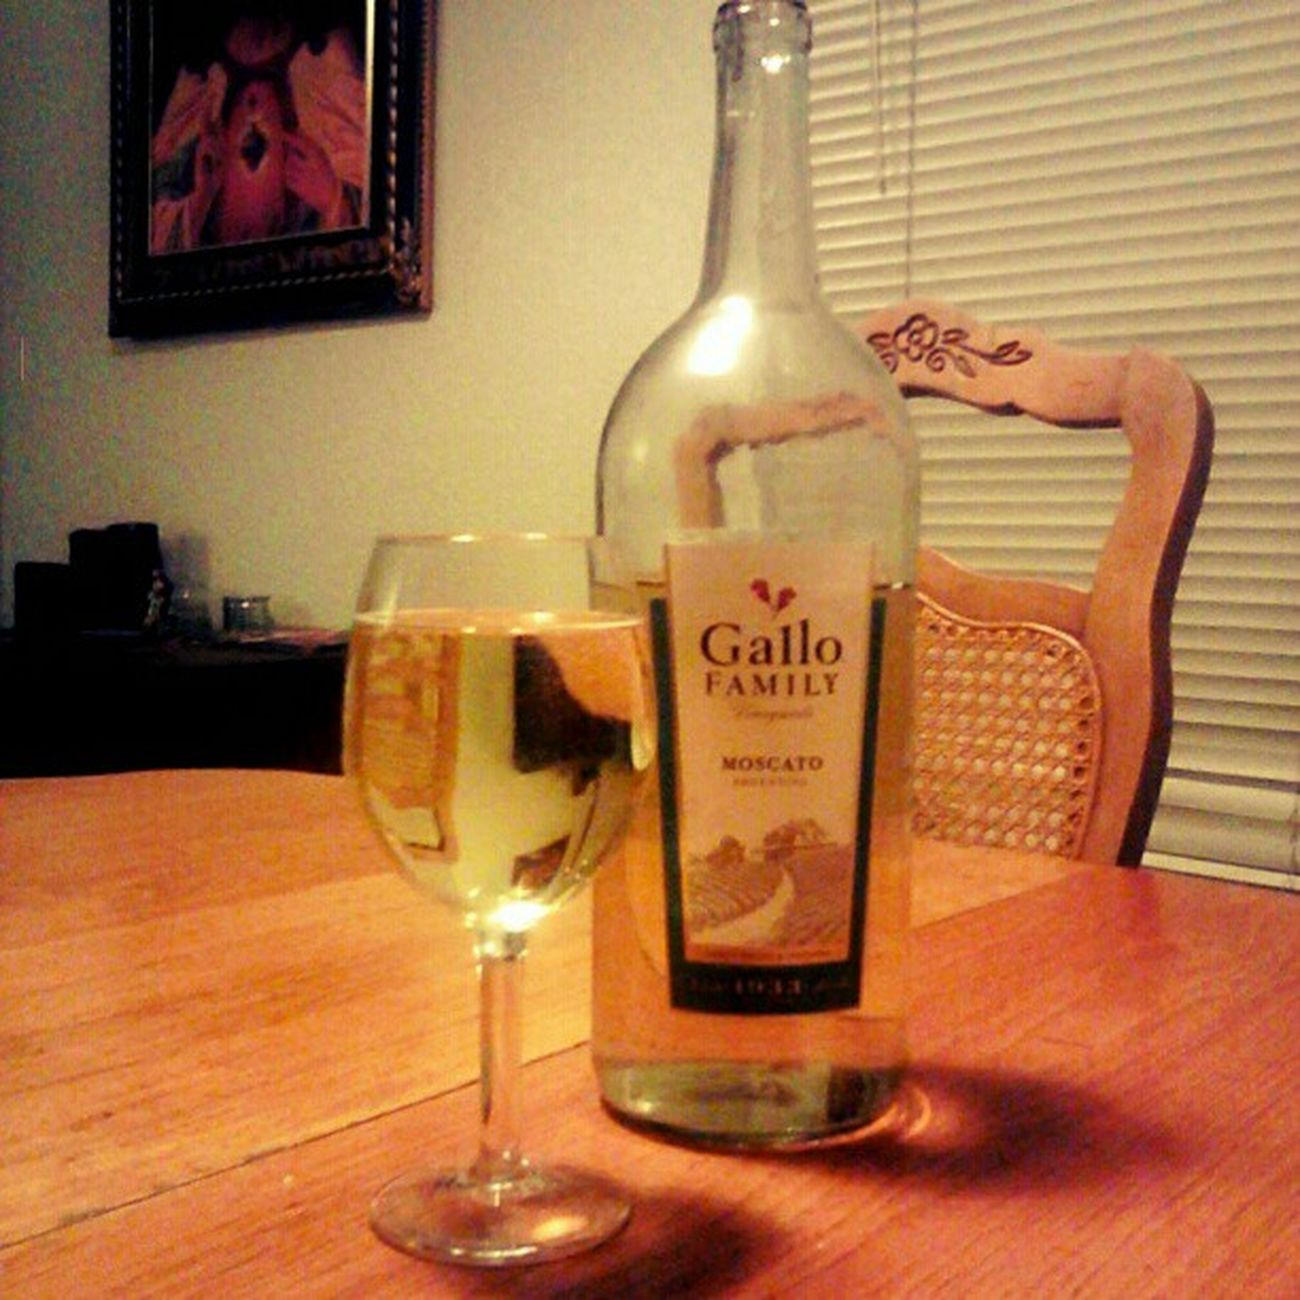 I'm enjoying a #yummy glass of #moscato <3 Yummy Wine Wino Moscato Winelovers  Winesnob Winogram Gallovinyards Gallowine Moscatoargentina